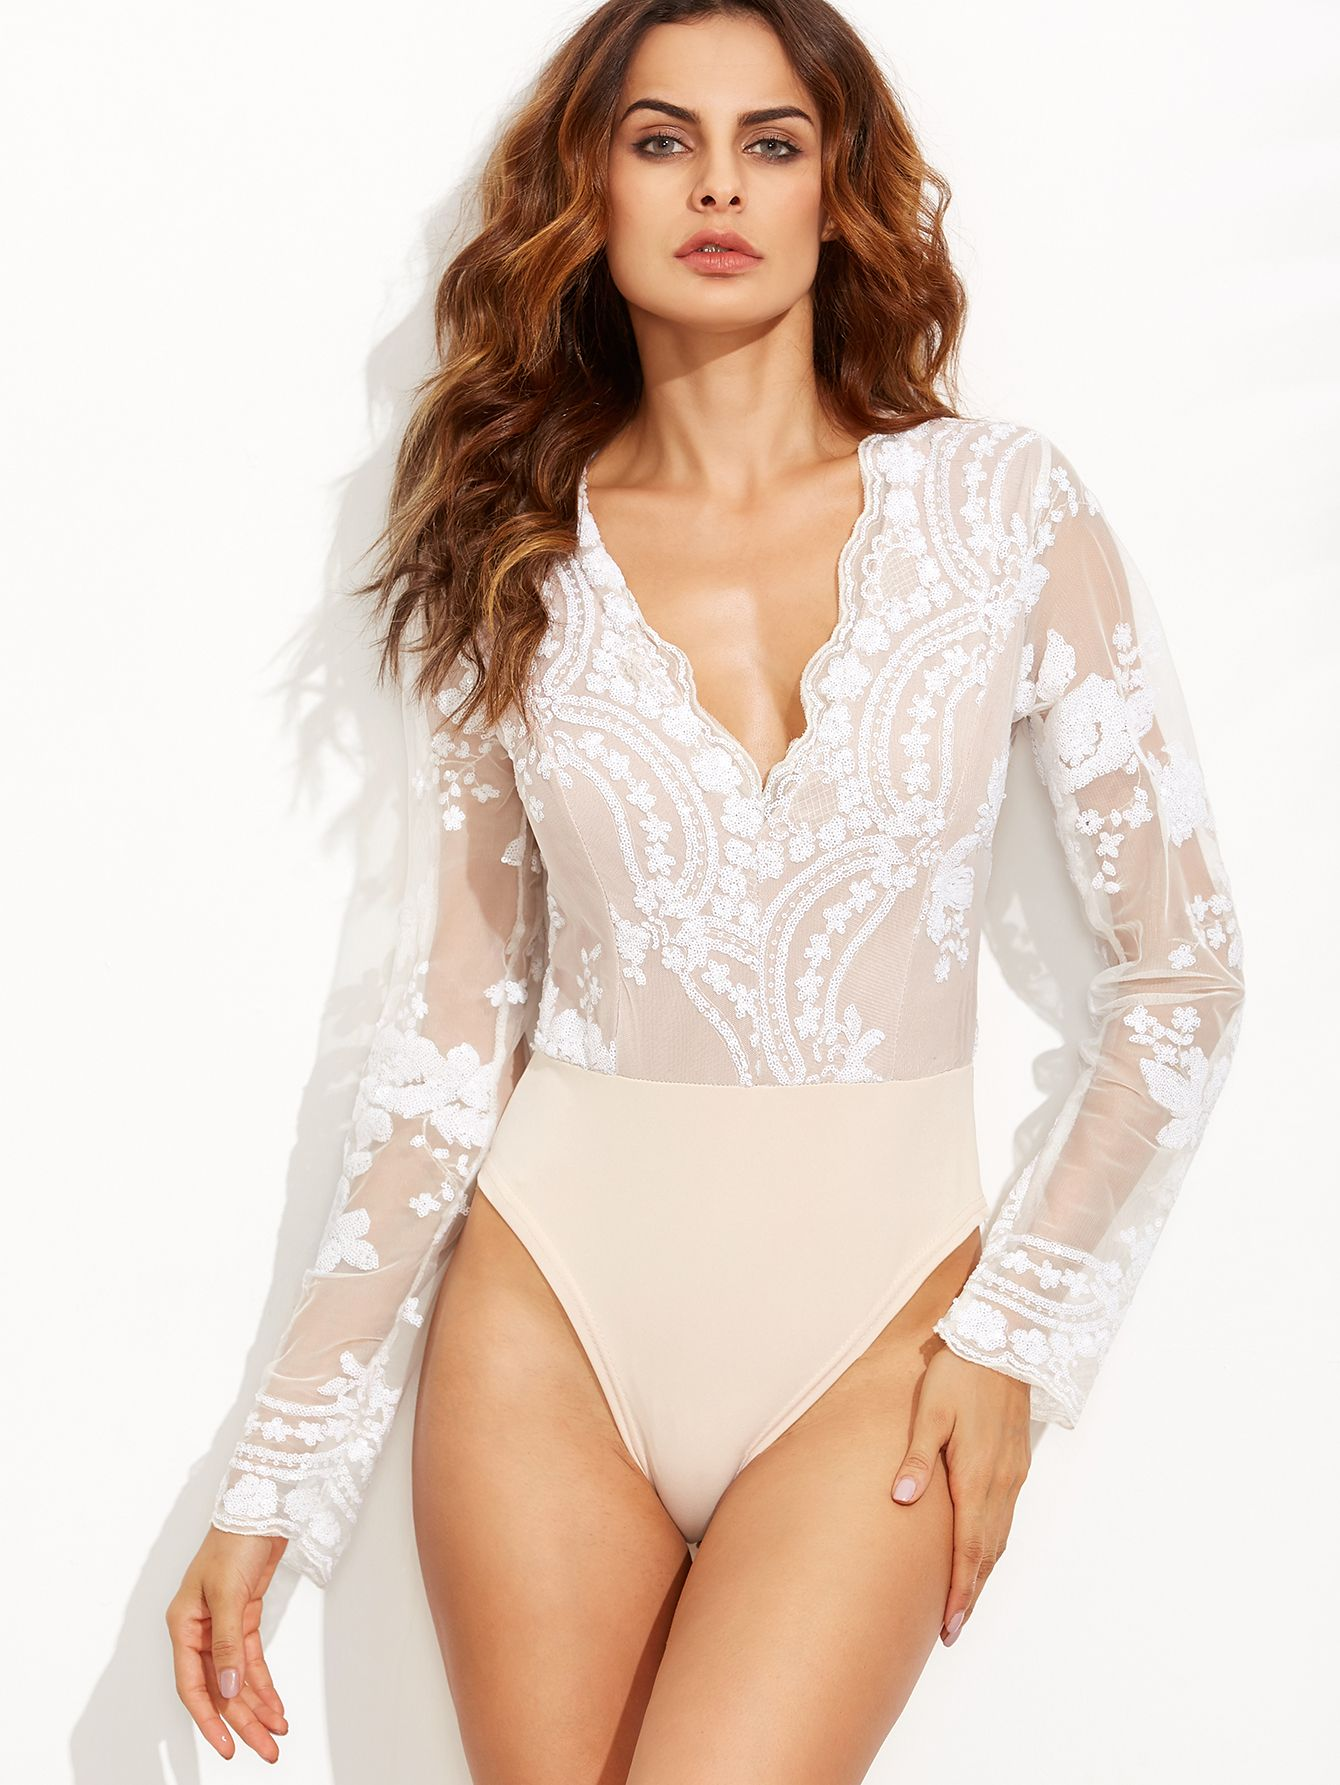 cc9f688ae26a Shop Scalloped V Neck Sequins Embroidered Sheer Bodysuit online. SheIn  offers Scalloped V Neck Sequins Embroidered Sheer Bodysuit & more to fit  your ...